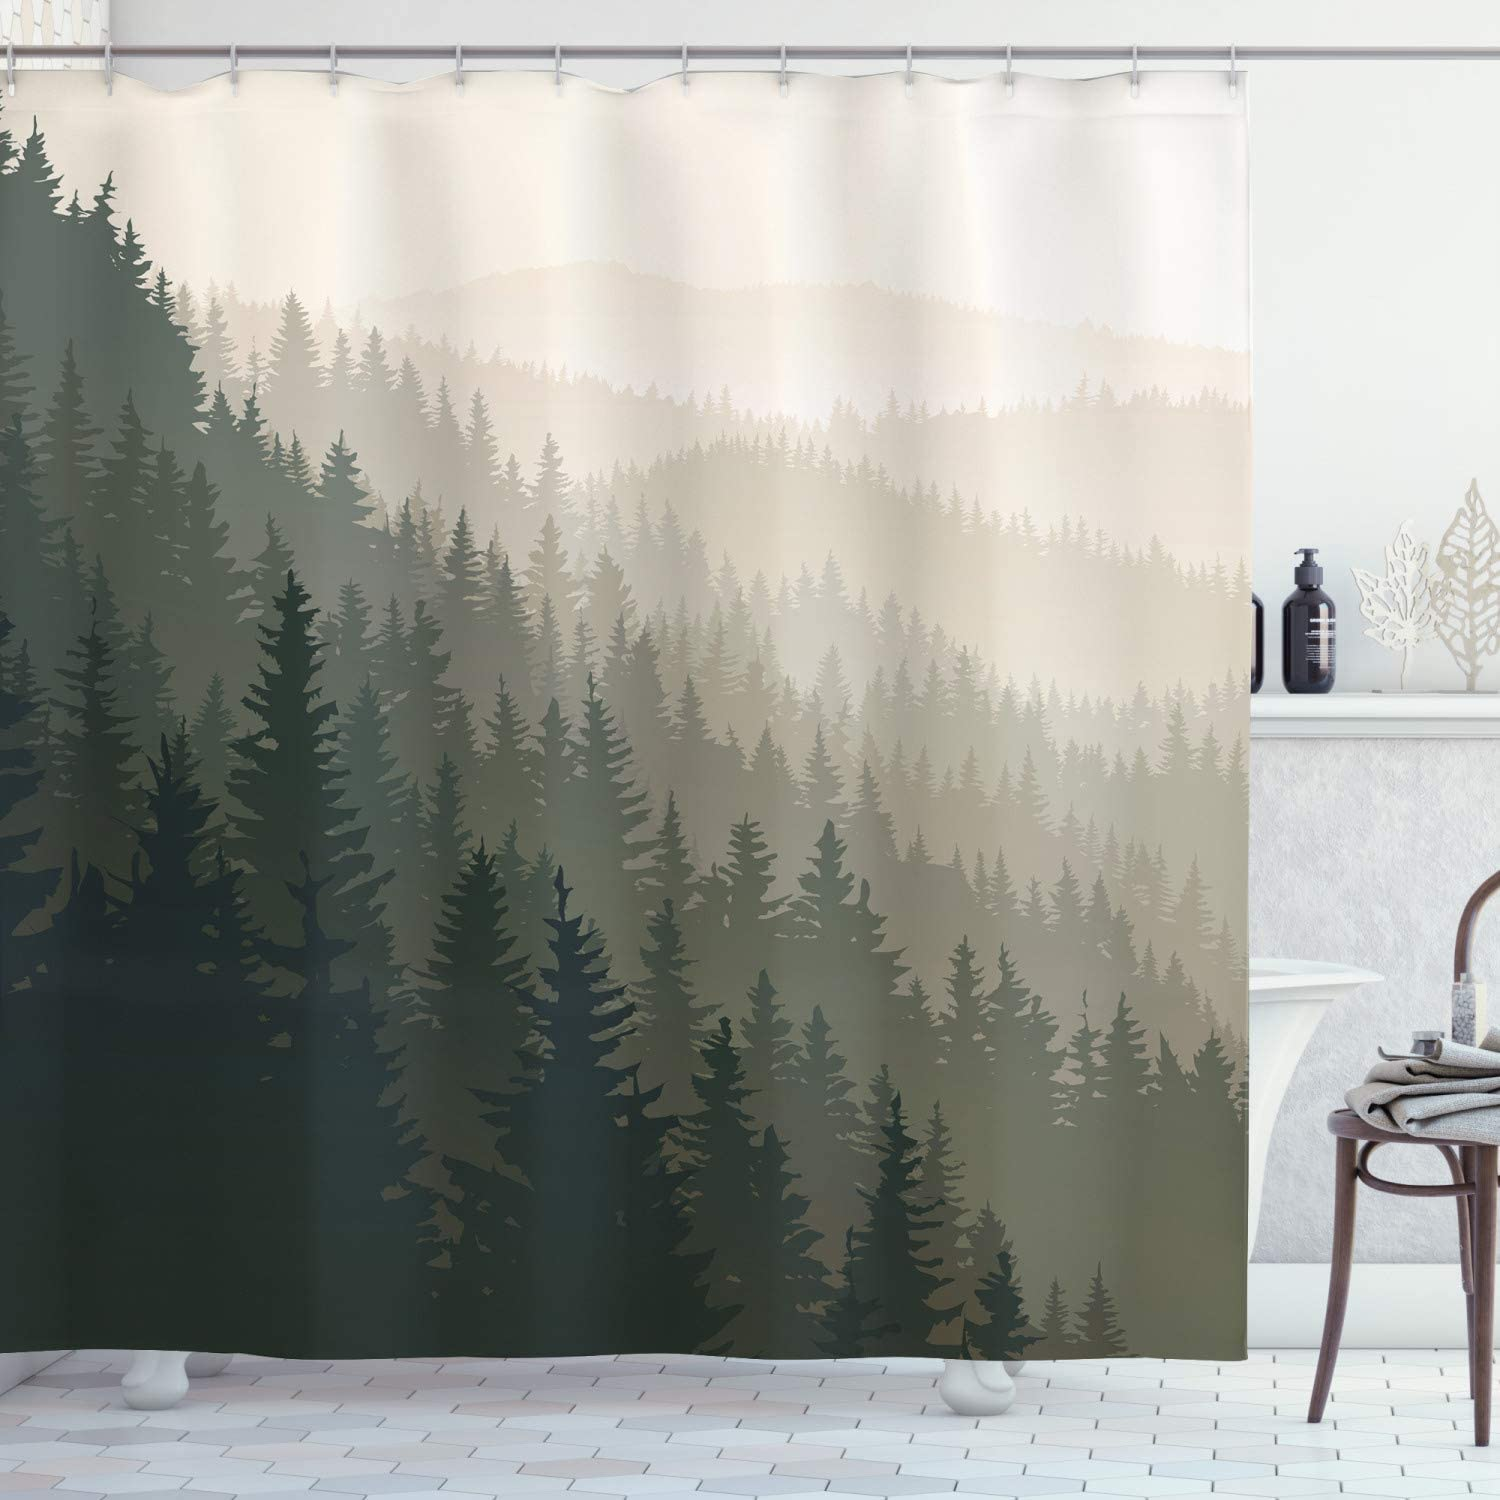 Details about  /Forest Shower Curtain Northern Nature Pattern Print for Bathroom